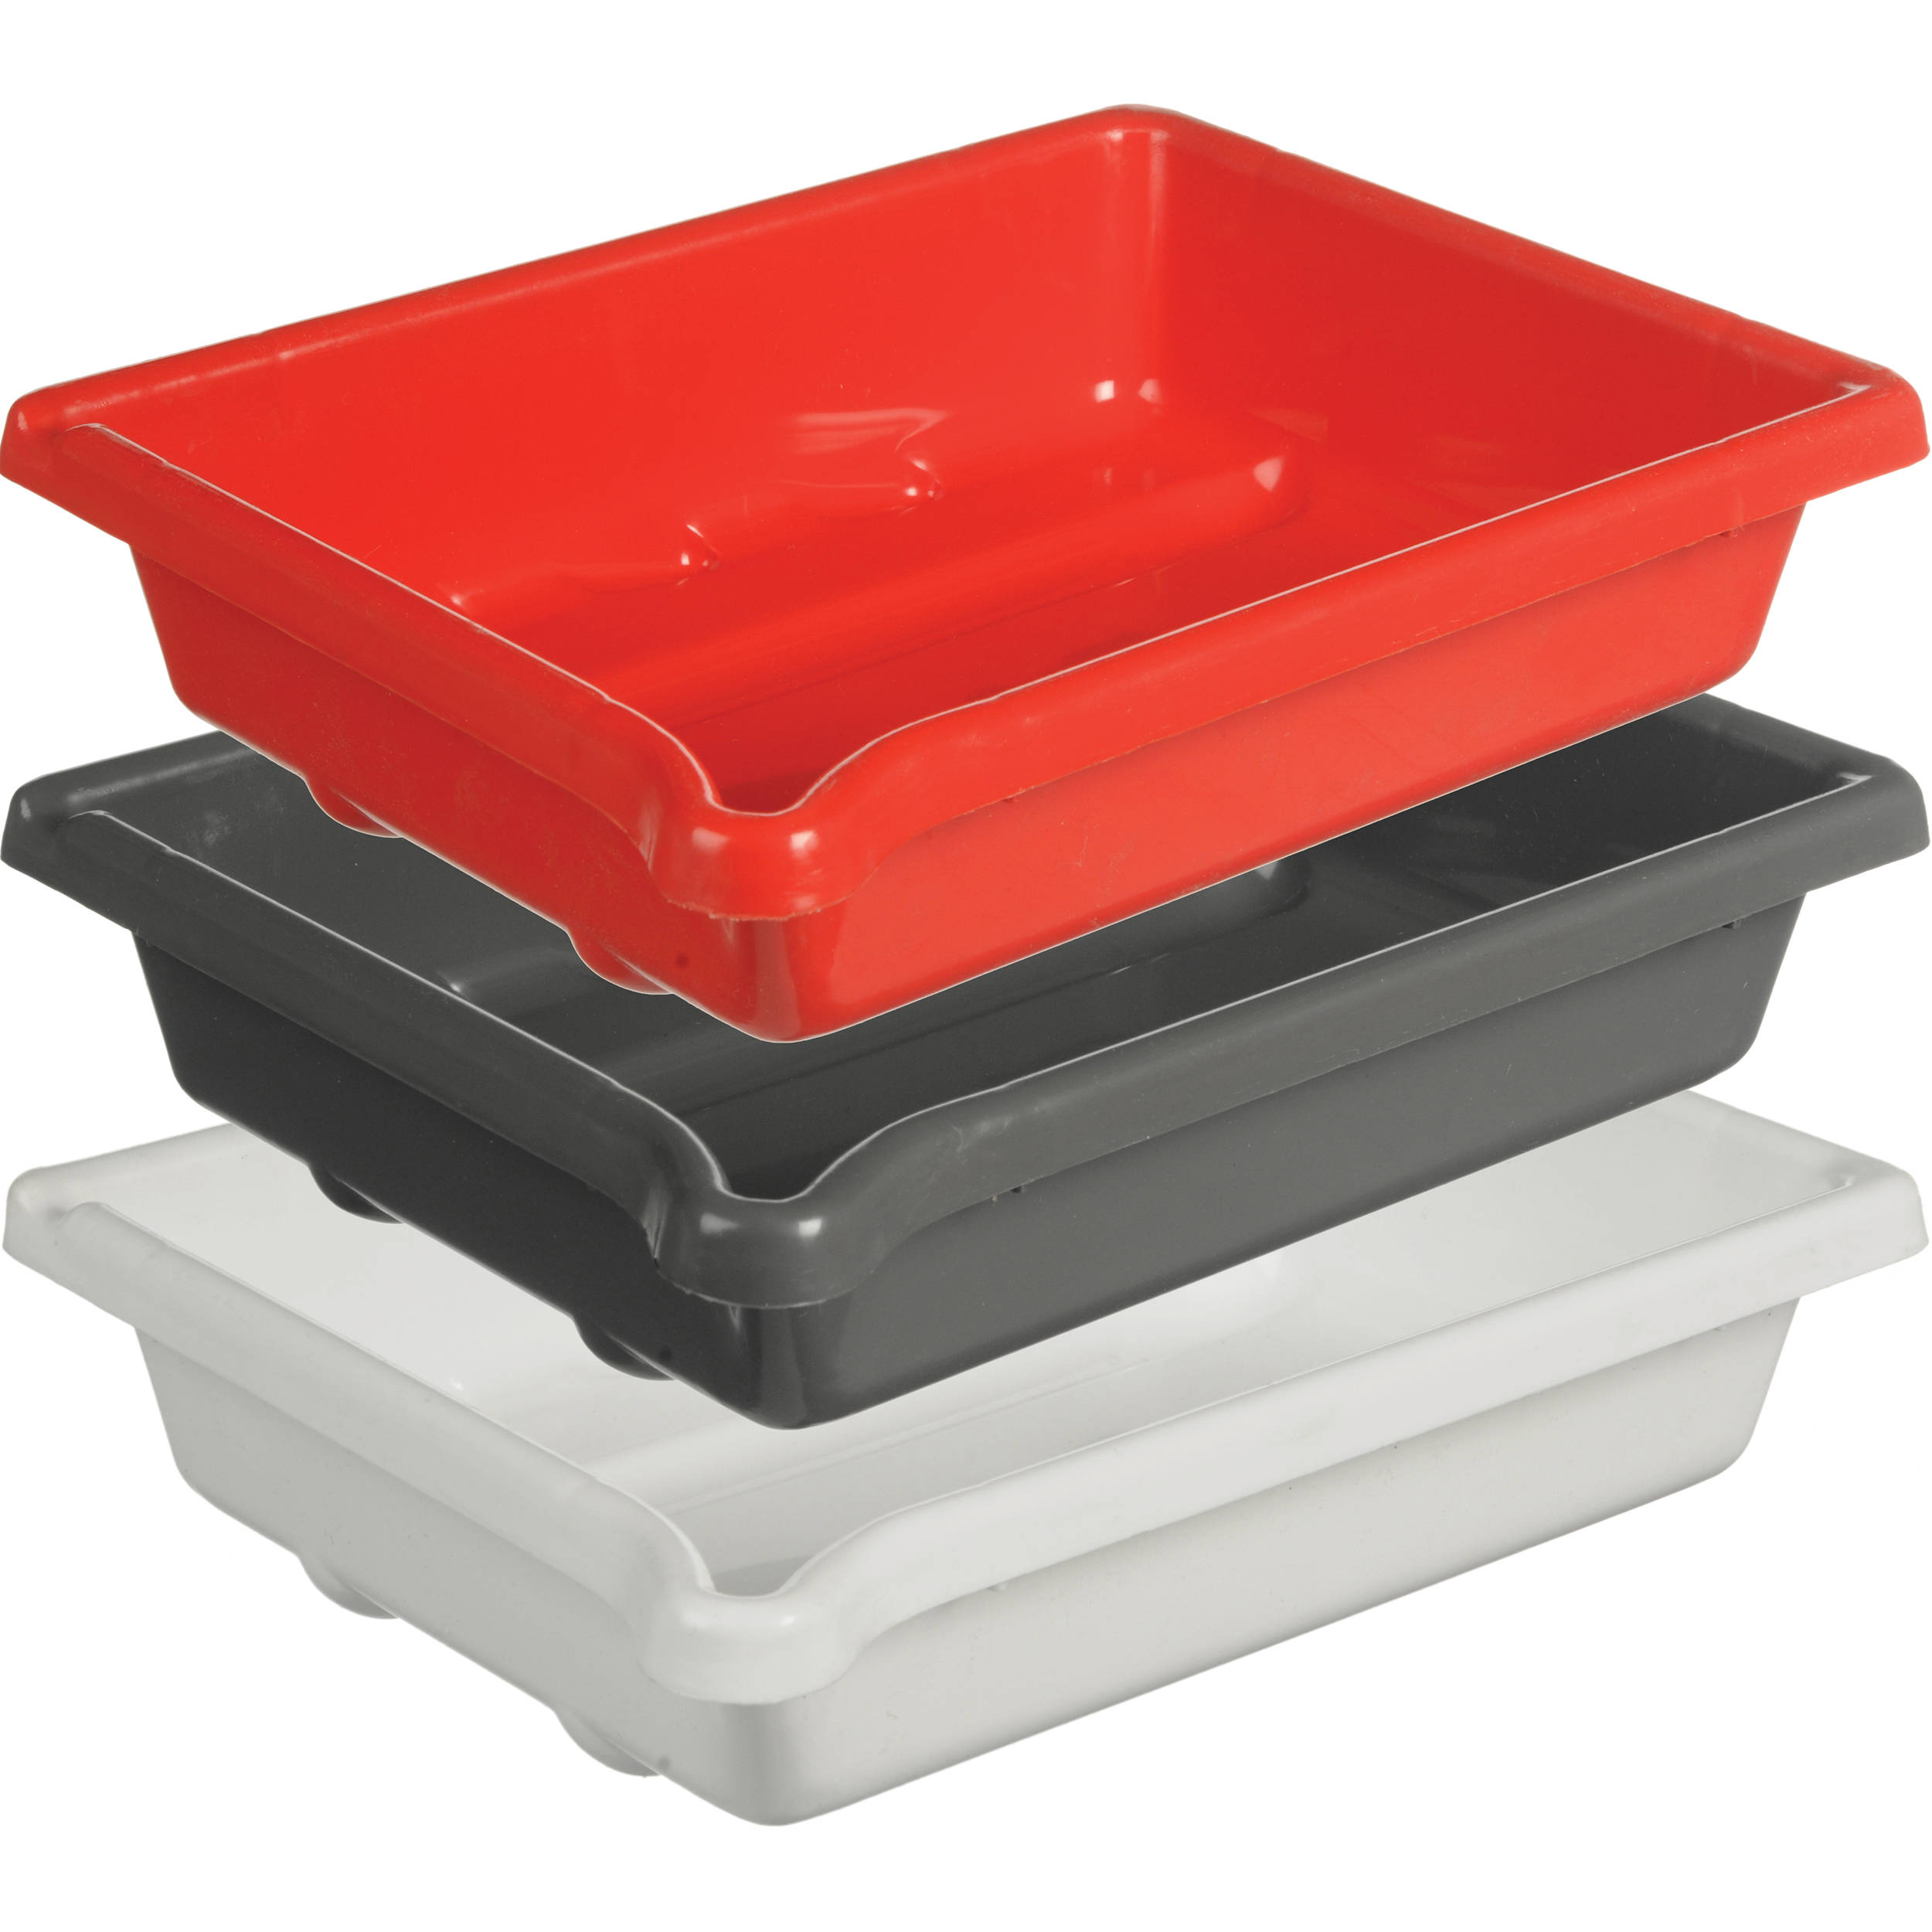 paterson plastic developing tray set 5x7 - Color Tray